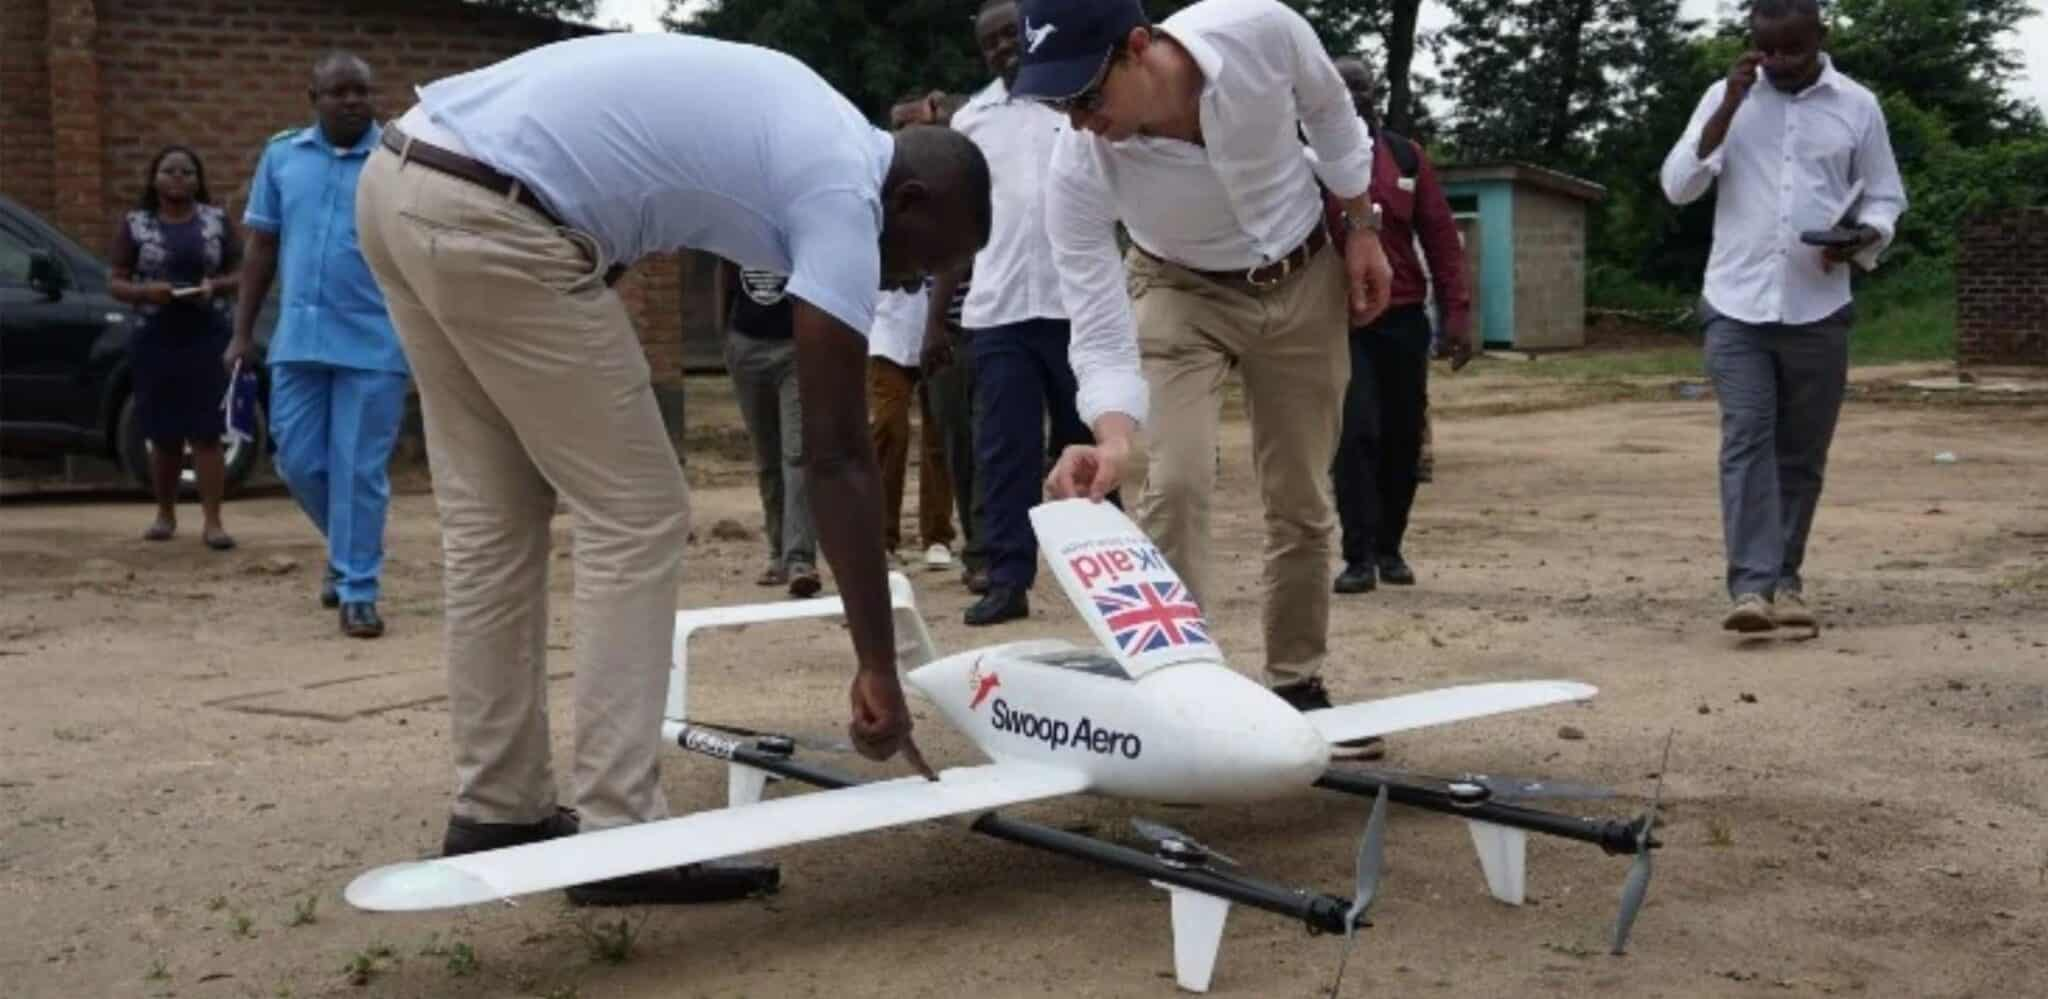 Swoop Aero operates drone fleet in Malawi remotely from their Melbourne office